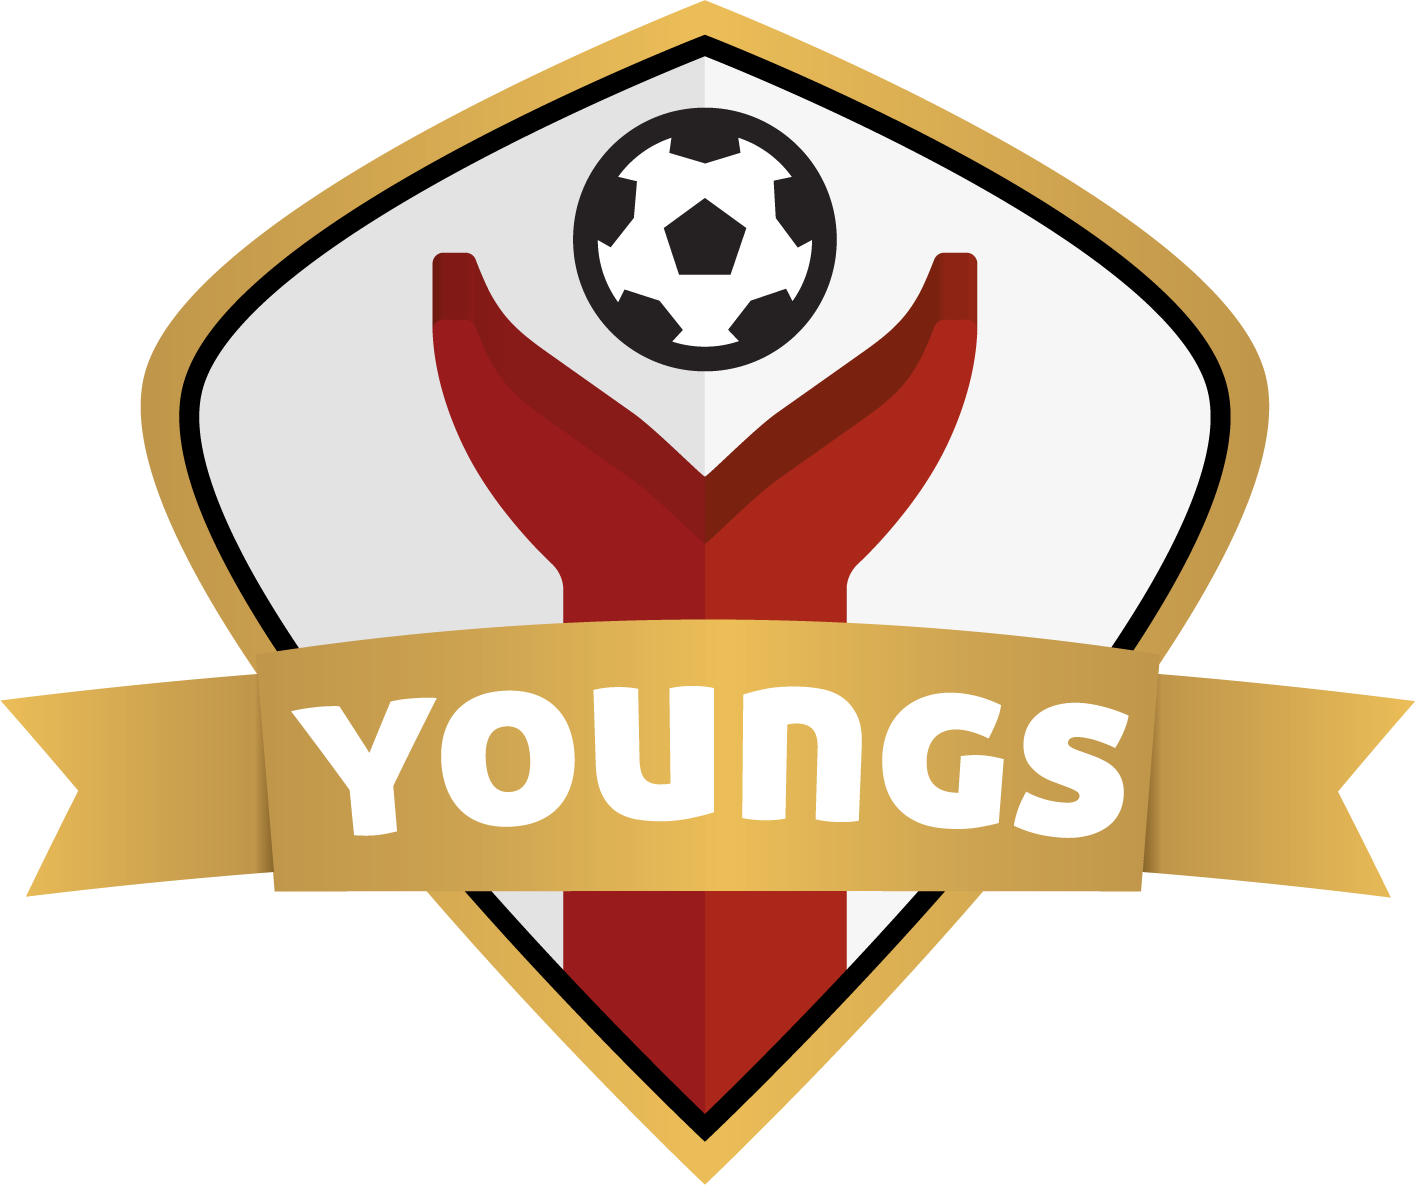 Youngs football logo